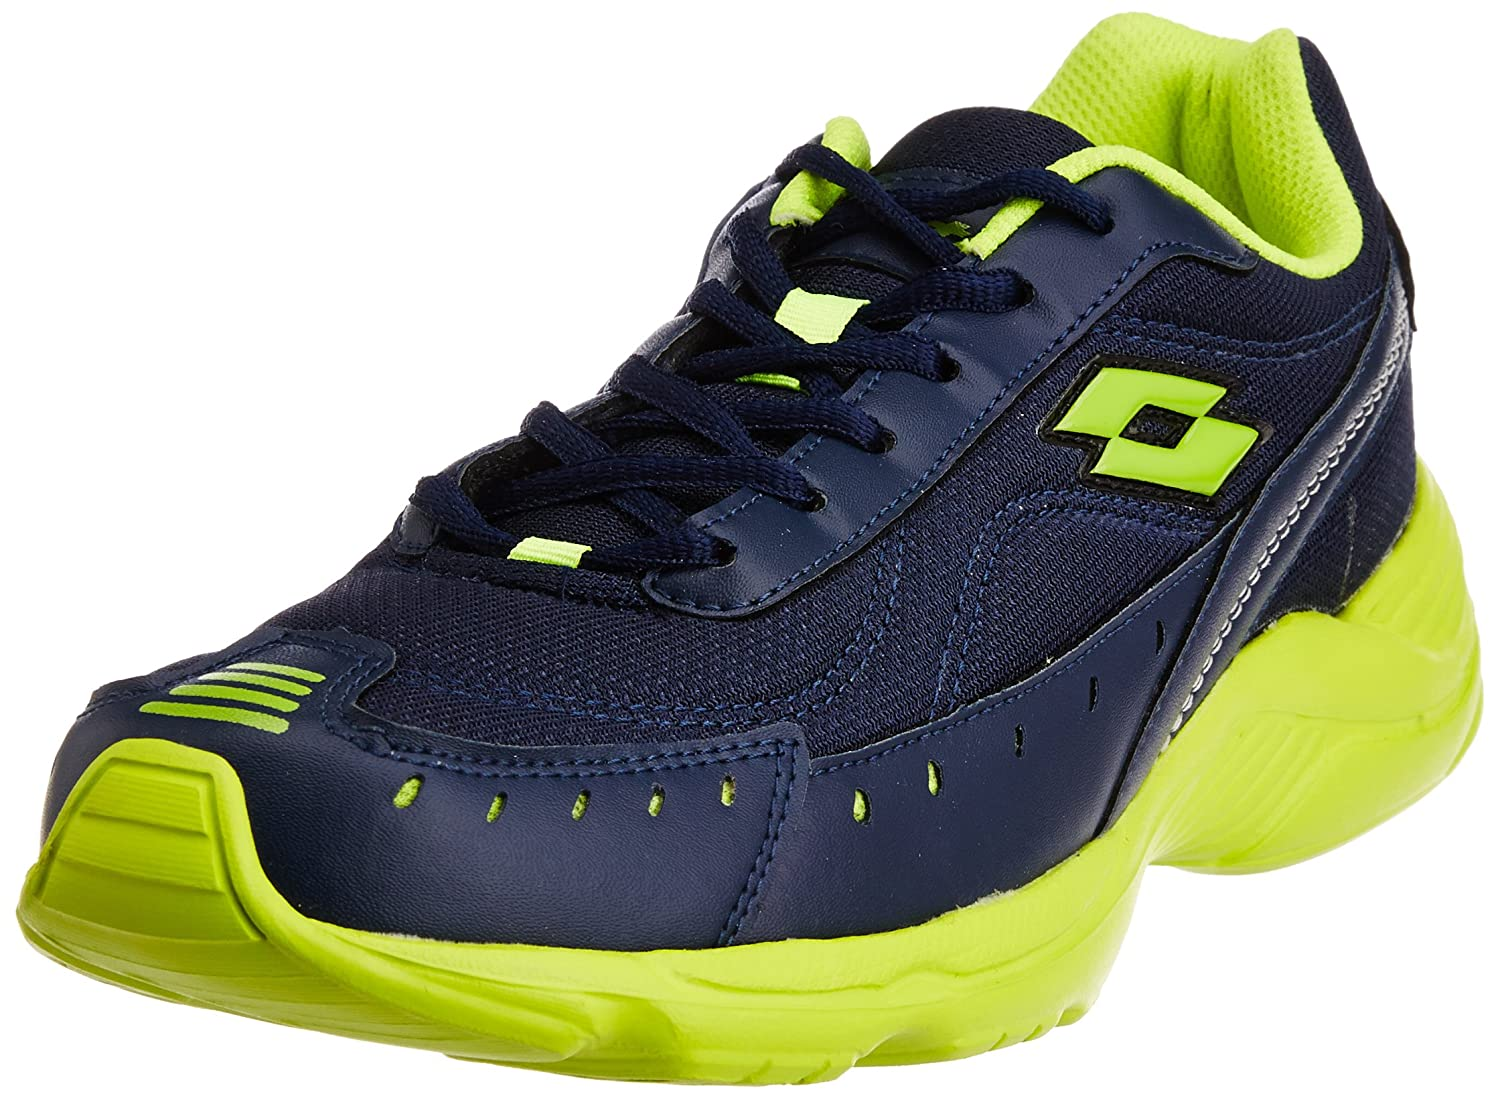 Lotto Men\'s Rapid Mesh Running Shoes: Buy Online at Low Prices in ...